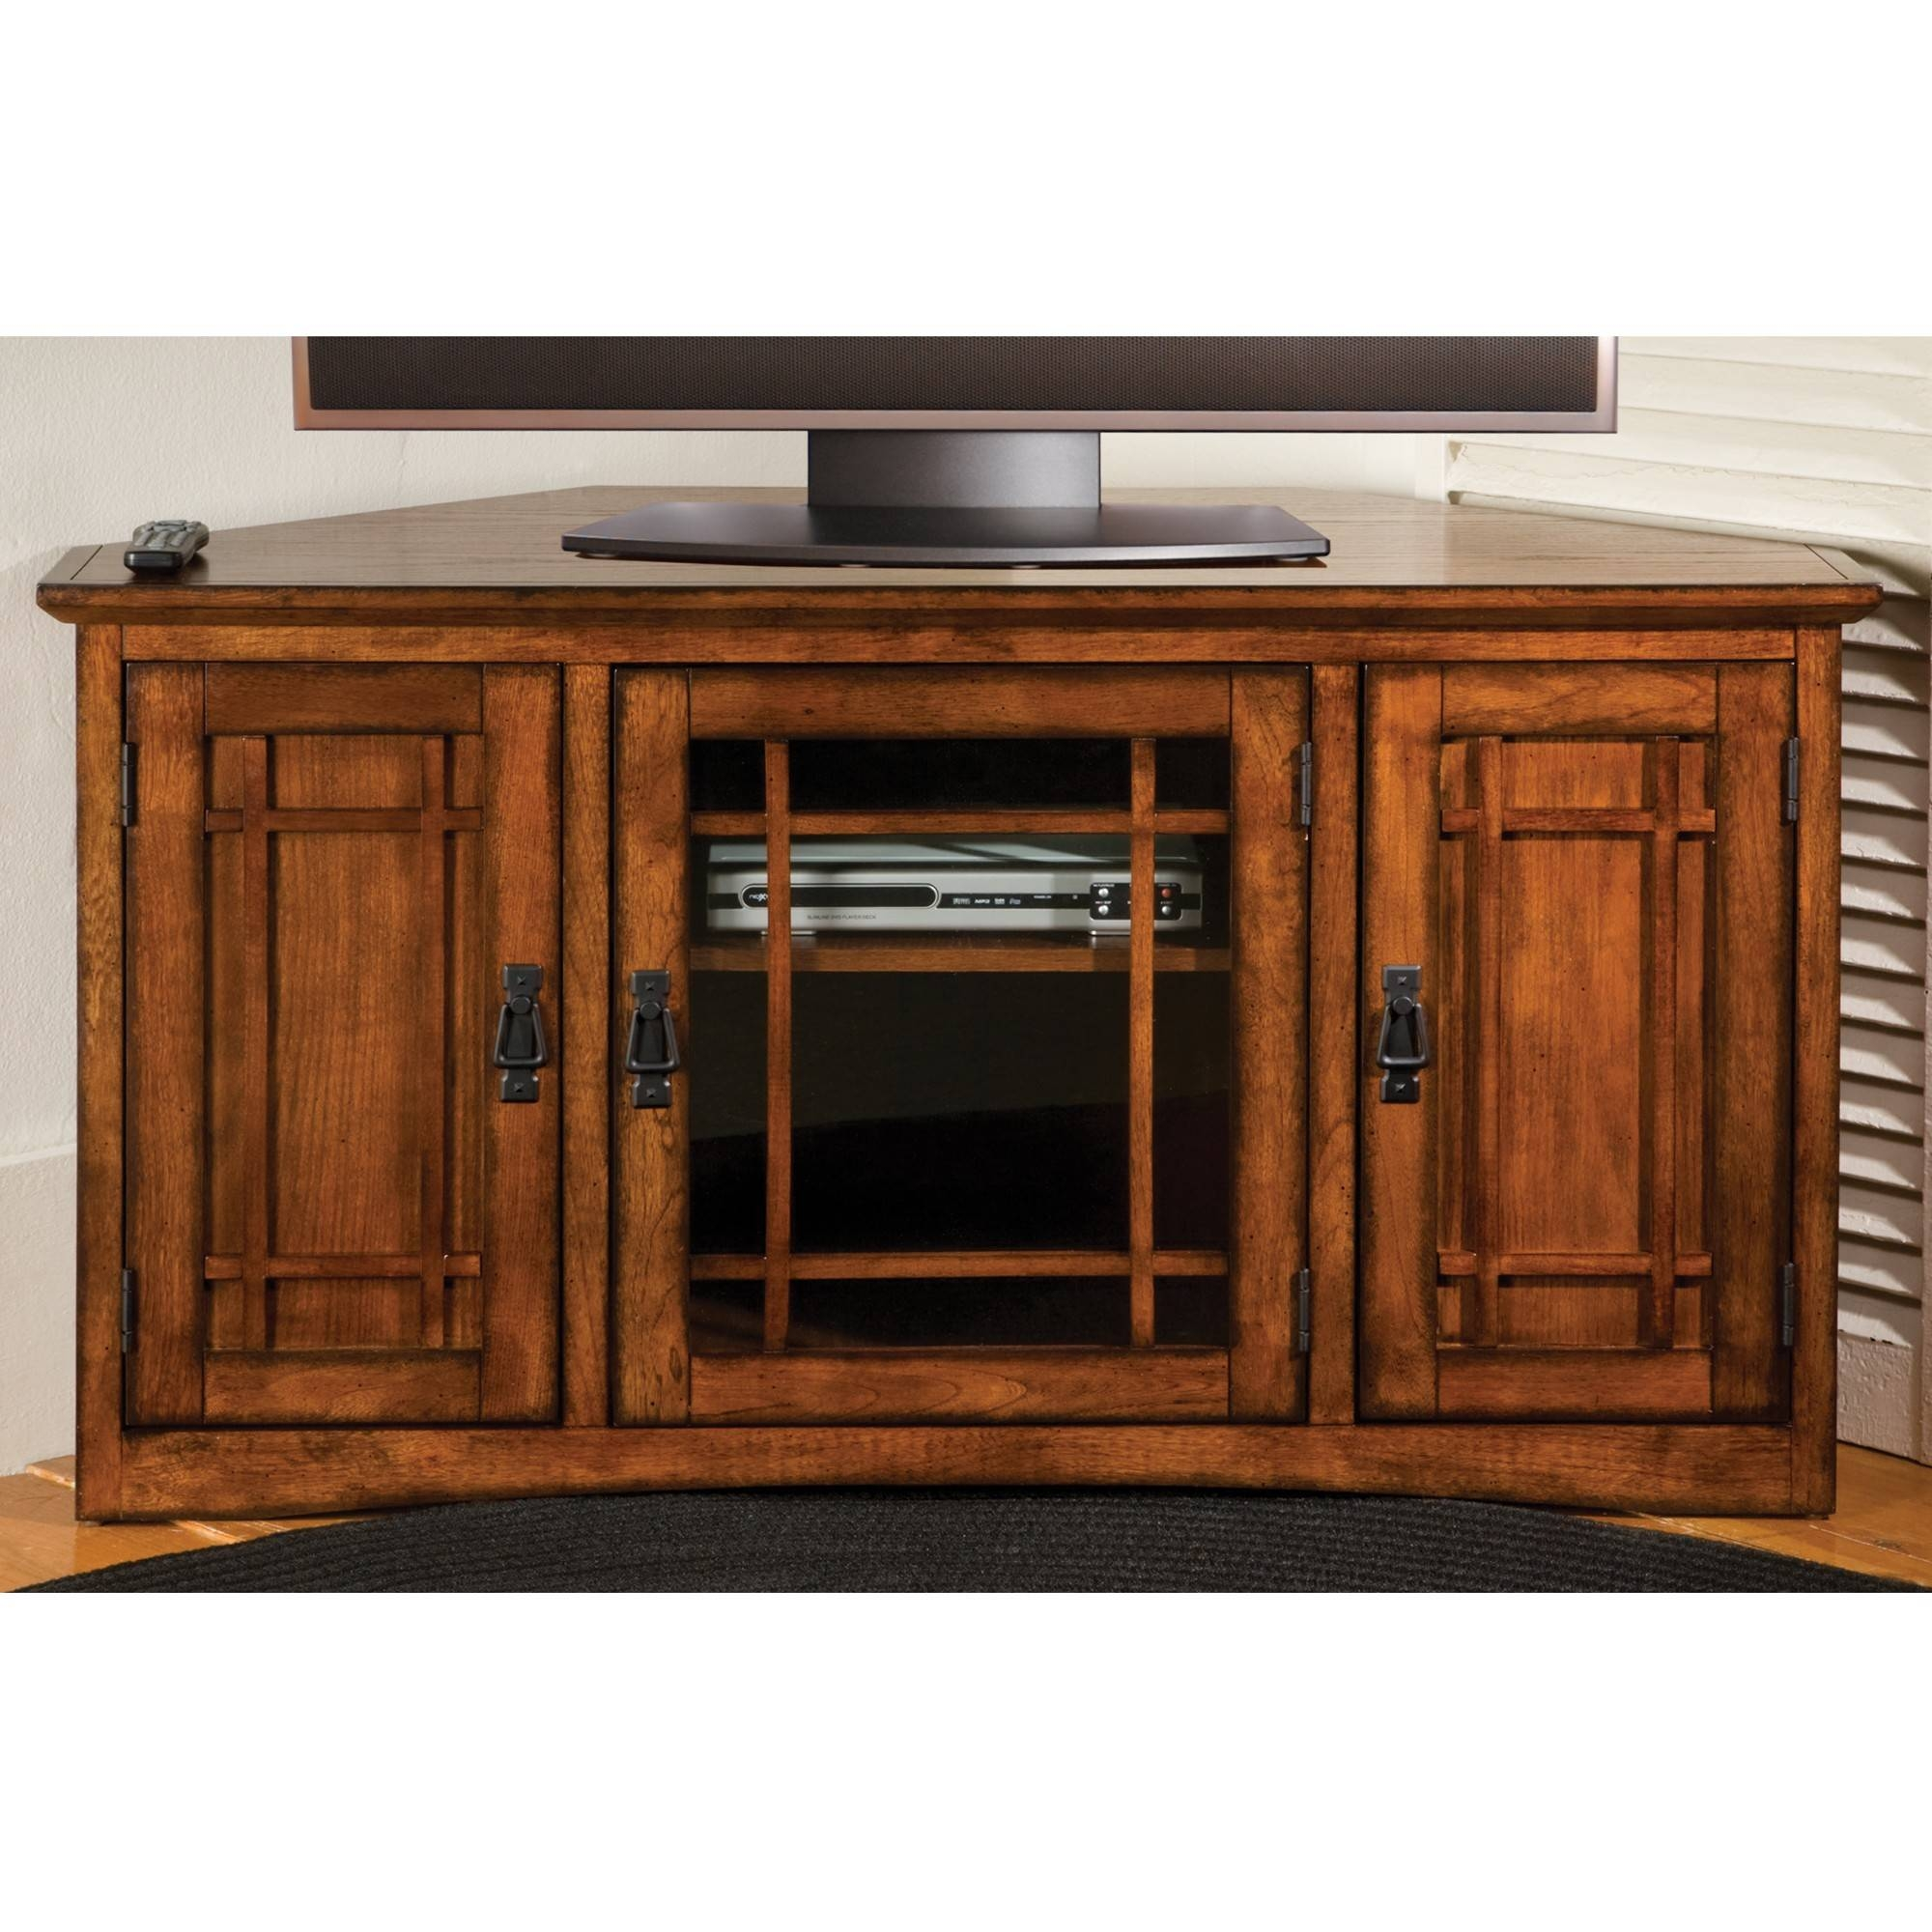 Mission Corner Tv Cabinet | Sturbridge Yankee Workshop with regard to Small Corner Tv Cabinets (Image 8 of 15)